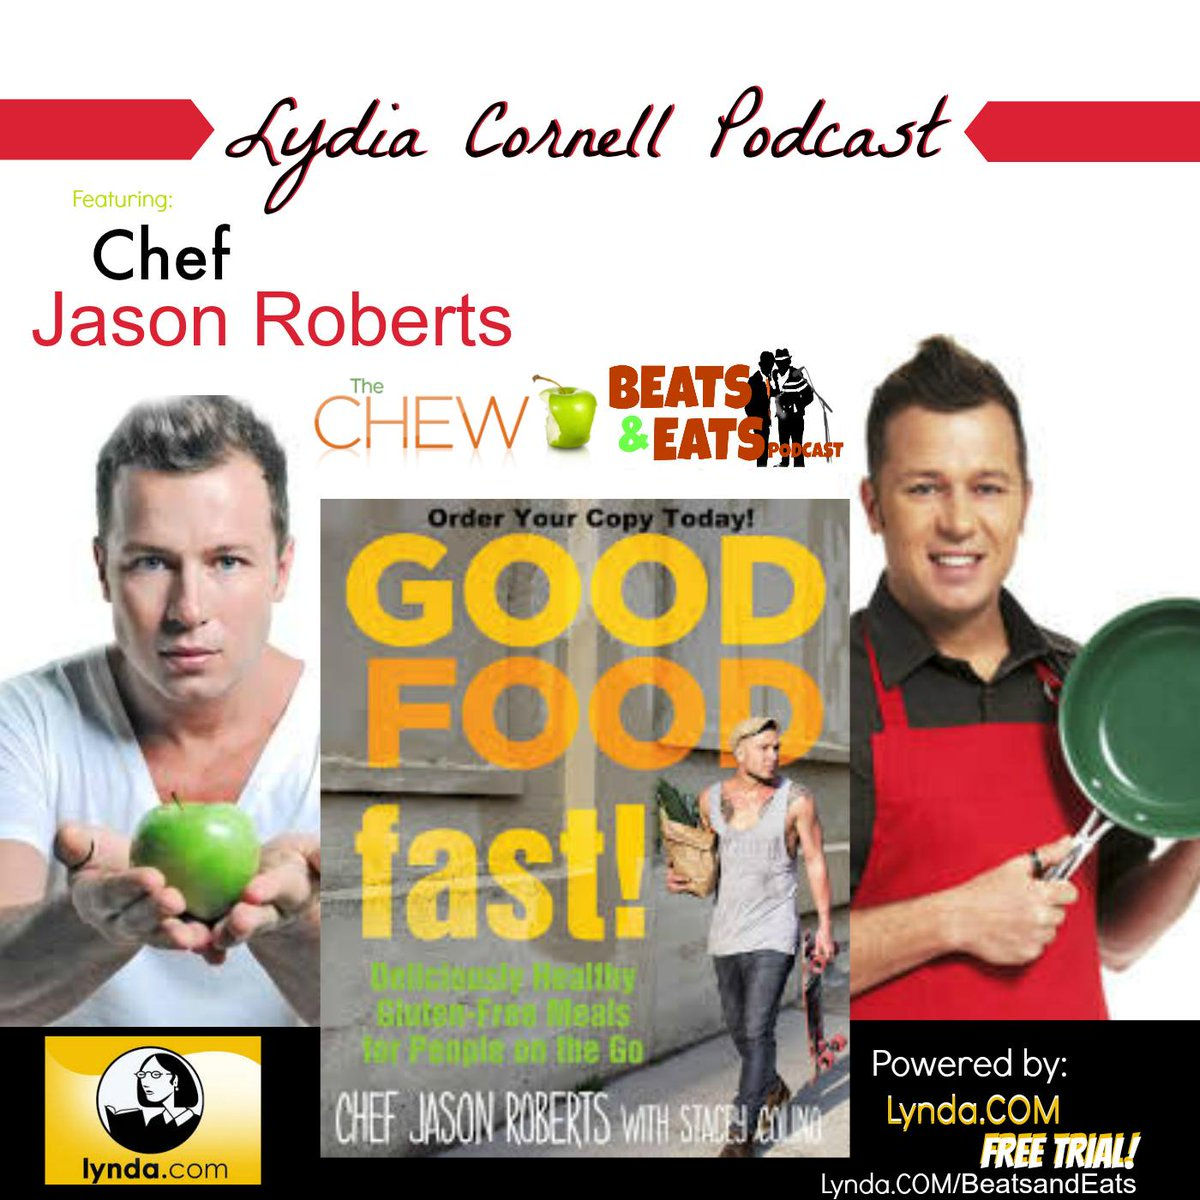 . @LydiaCornell #Podcast w/ @CLNS_Nick & Guest- @ChefJasRoberts! Coming today! Download the Beats and Eats APP! http://t.co/OA10ajf98M